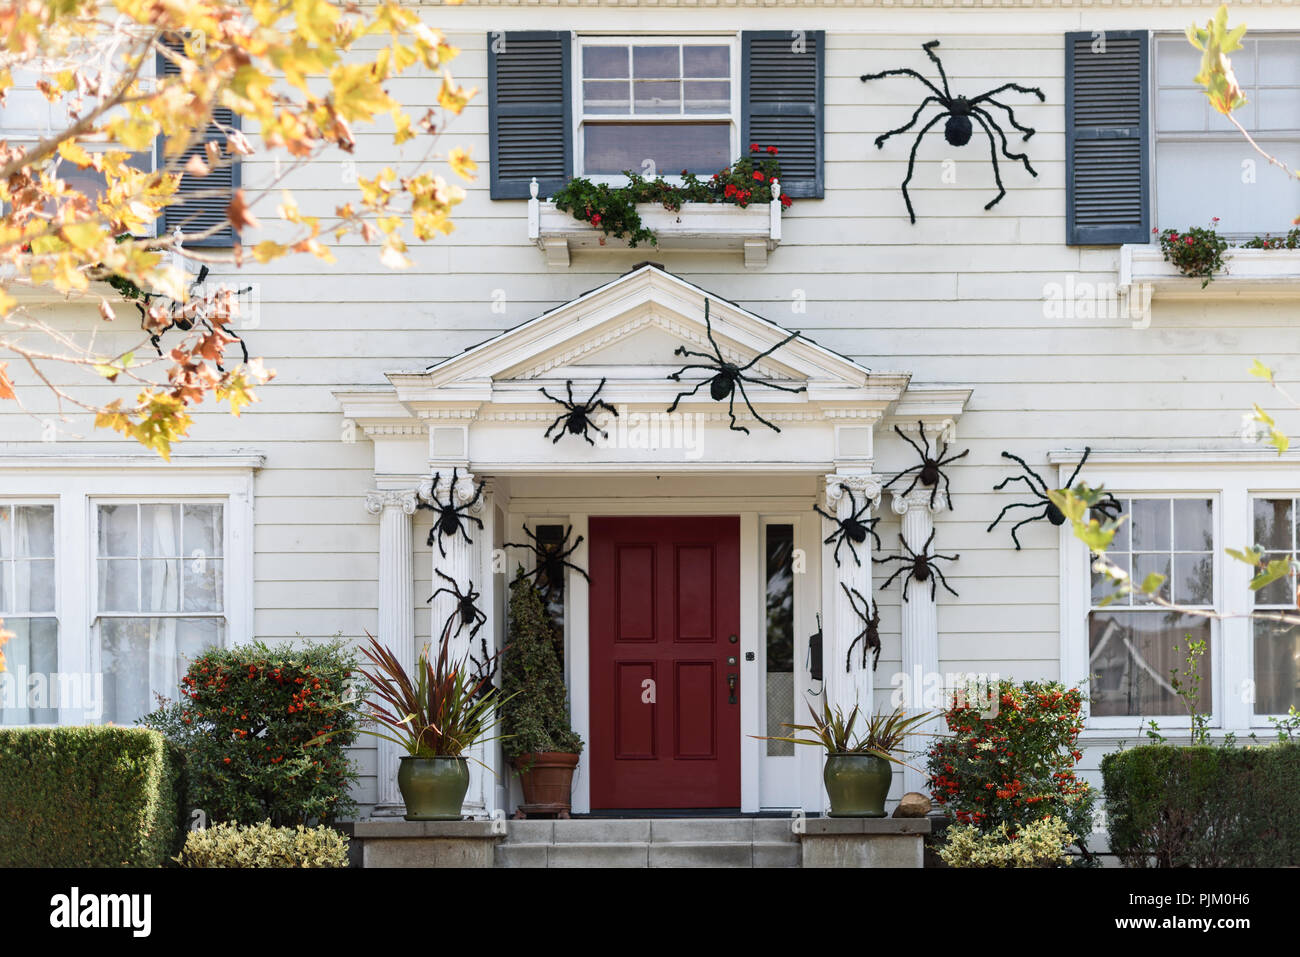 Halloween In Front Of House Decorations Stock Photo 218027746 Alamy